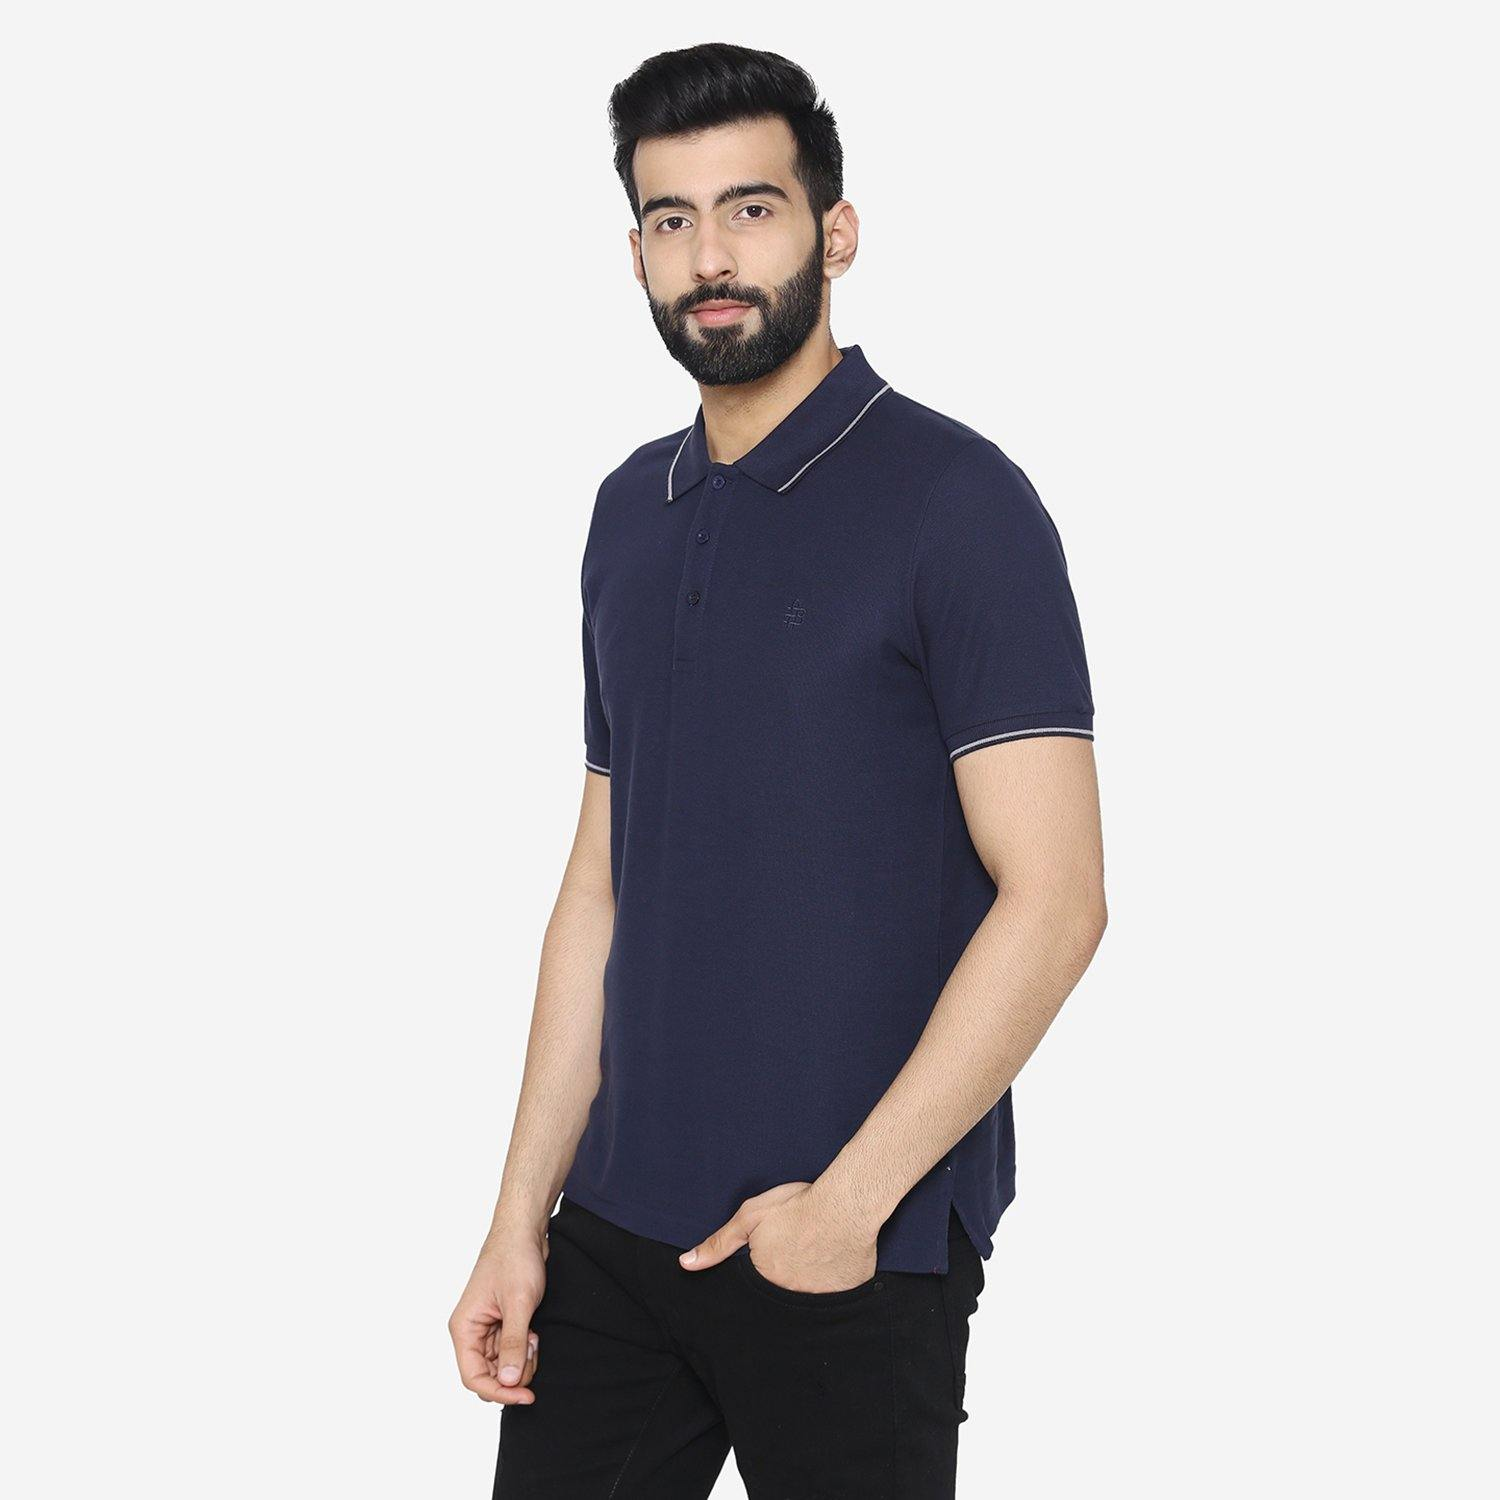 Men's  Stylish  Polo - Neck T - Shirt For Summer - Navy